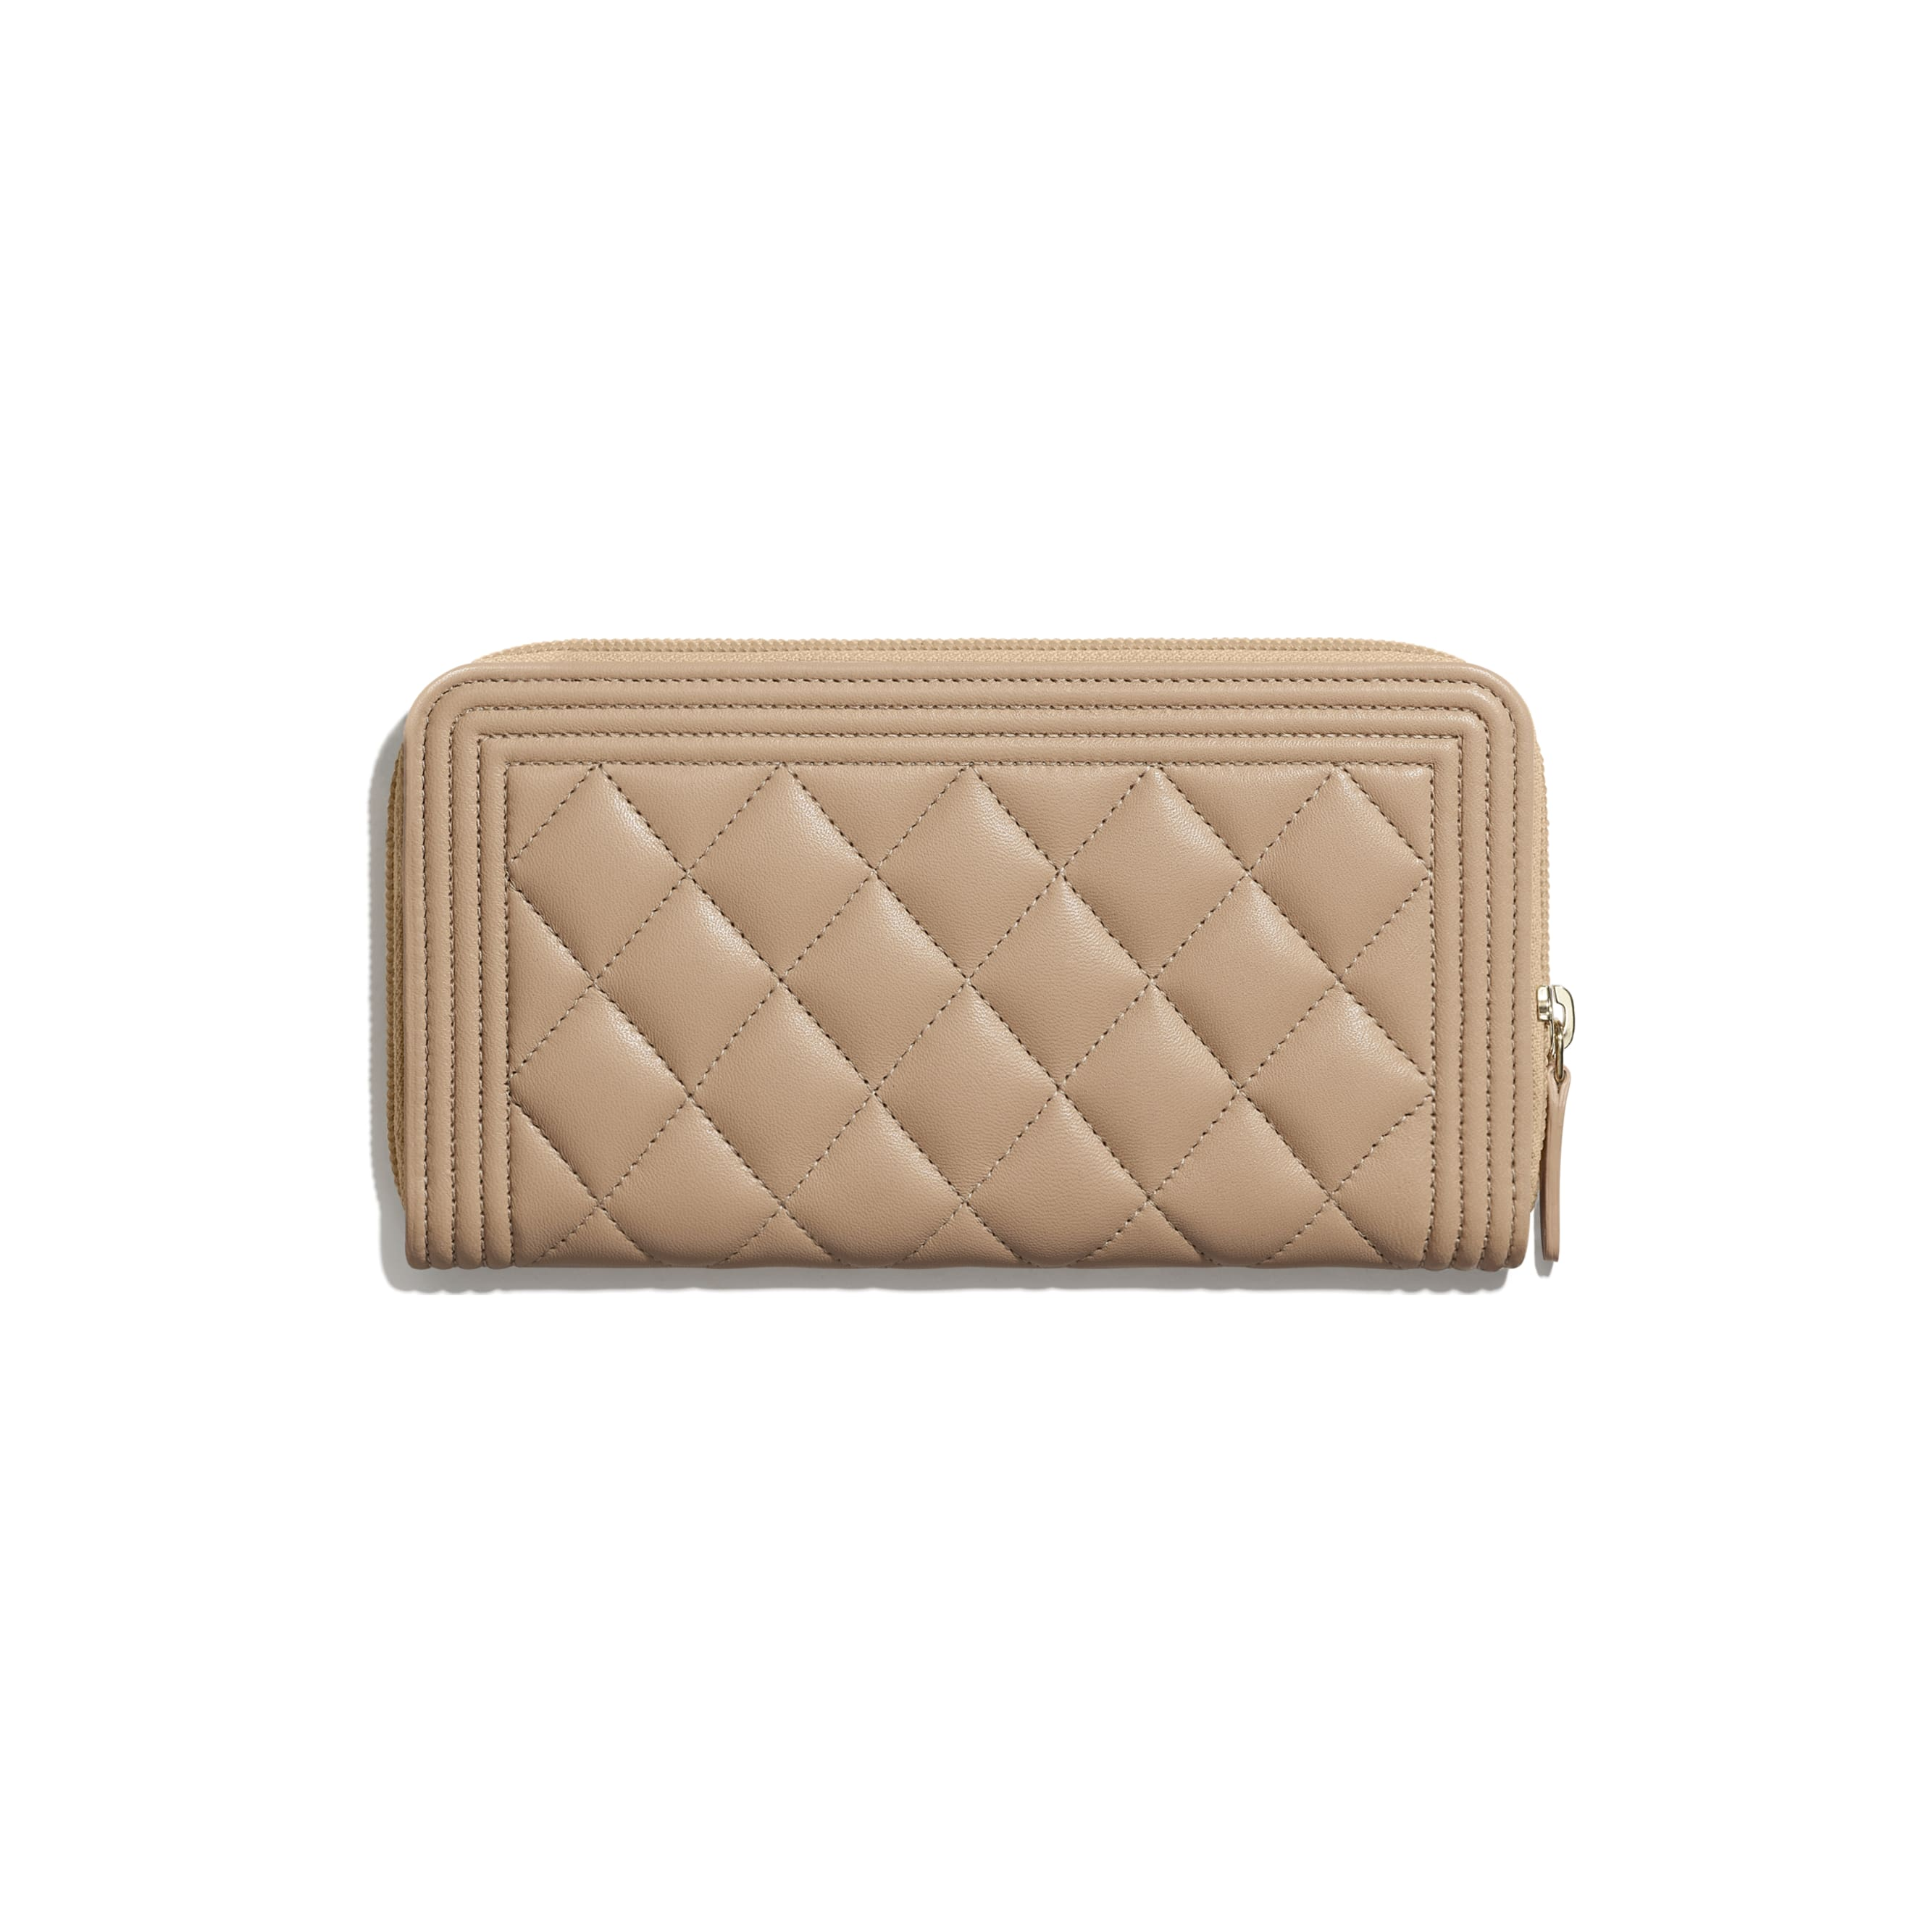 BOY CHANEL Long Zipped Wallet - Beige - Lambskin - CHANEL - Alternative view - see standard sized version